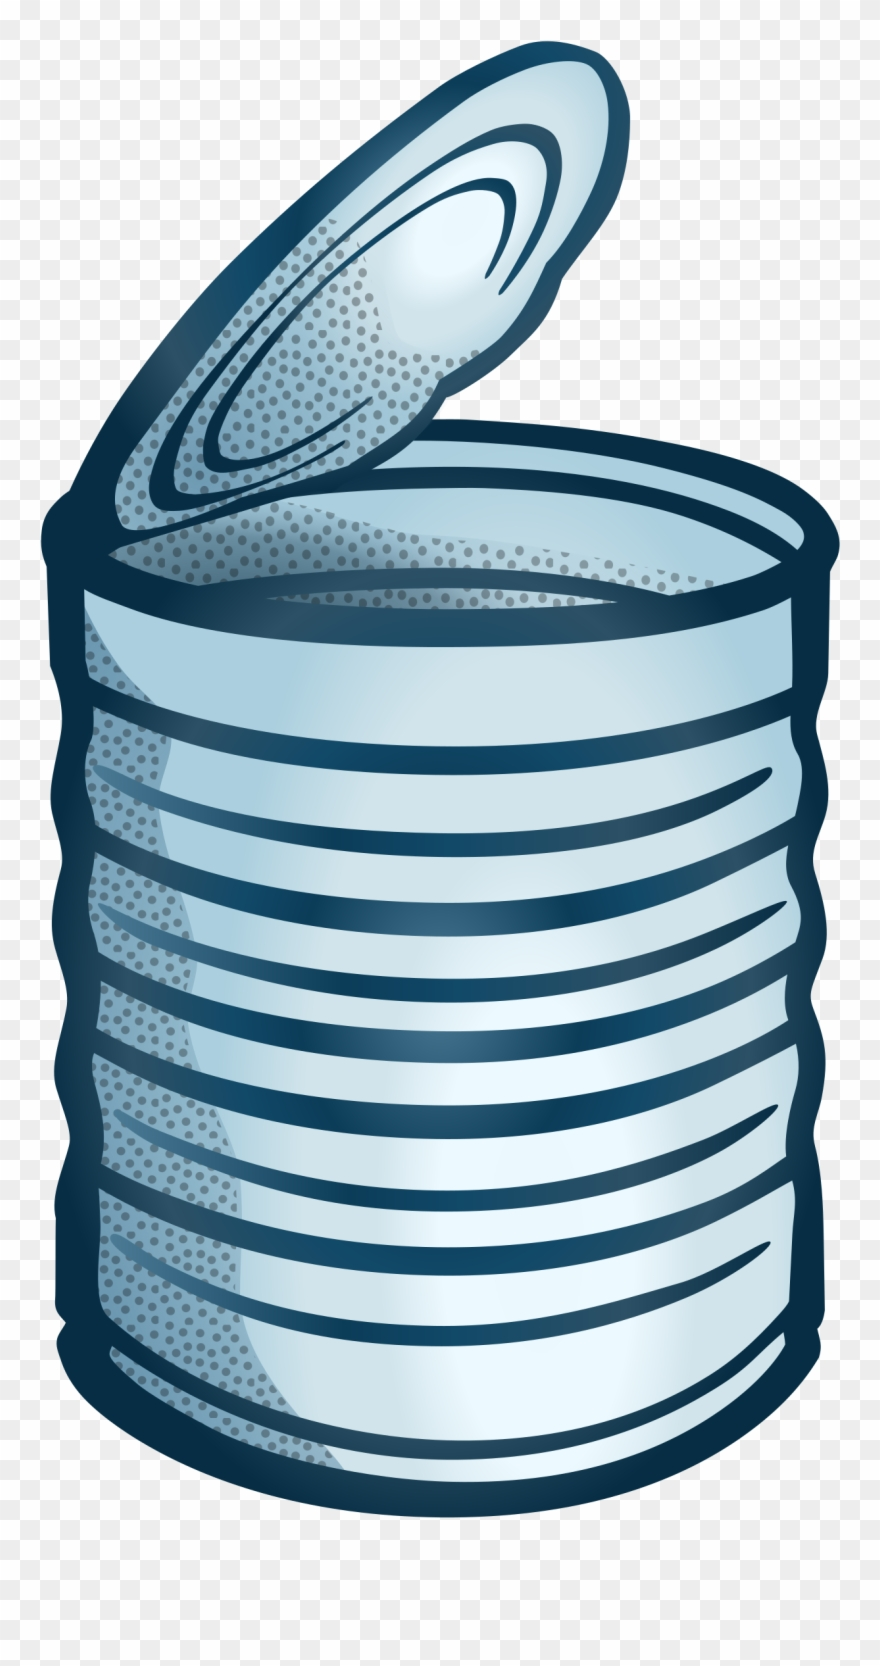 Tin can clipart image black and white Tin Can Can Stock Photo Drink Can Download - Clipart Can - Png ... image black and white